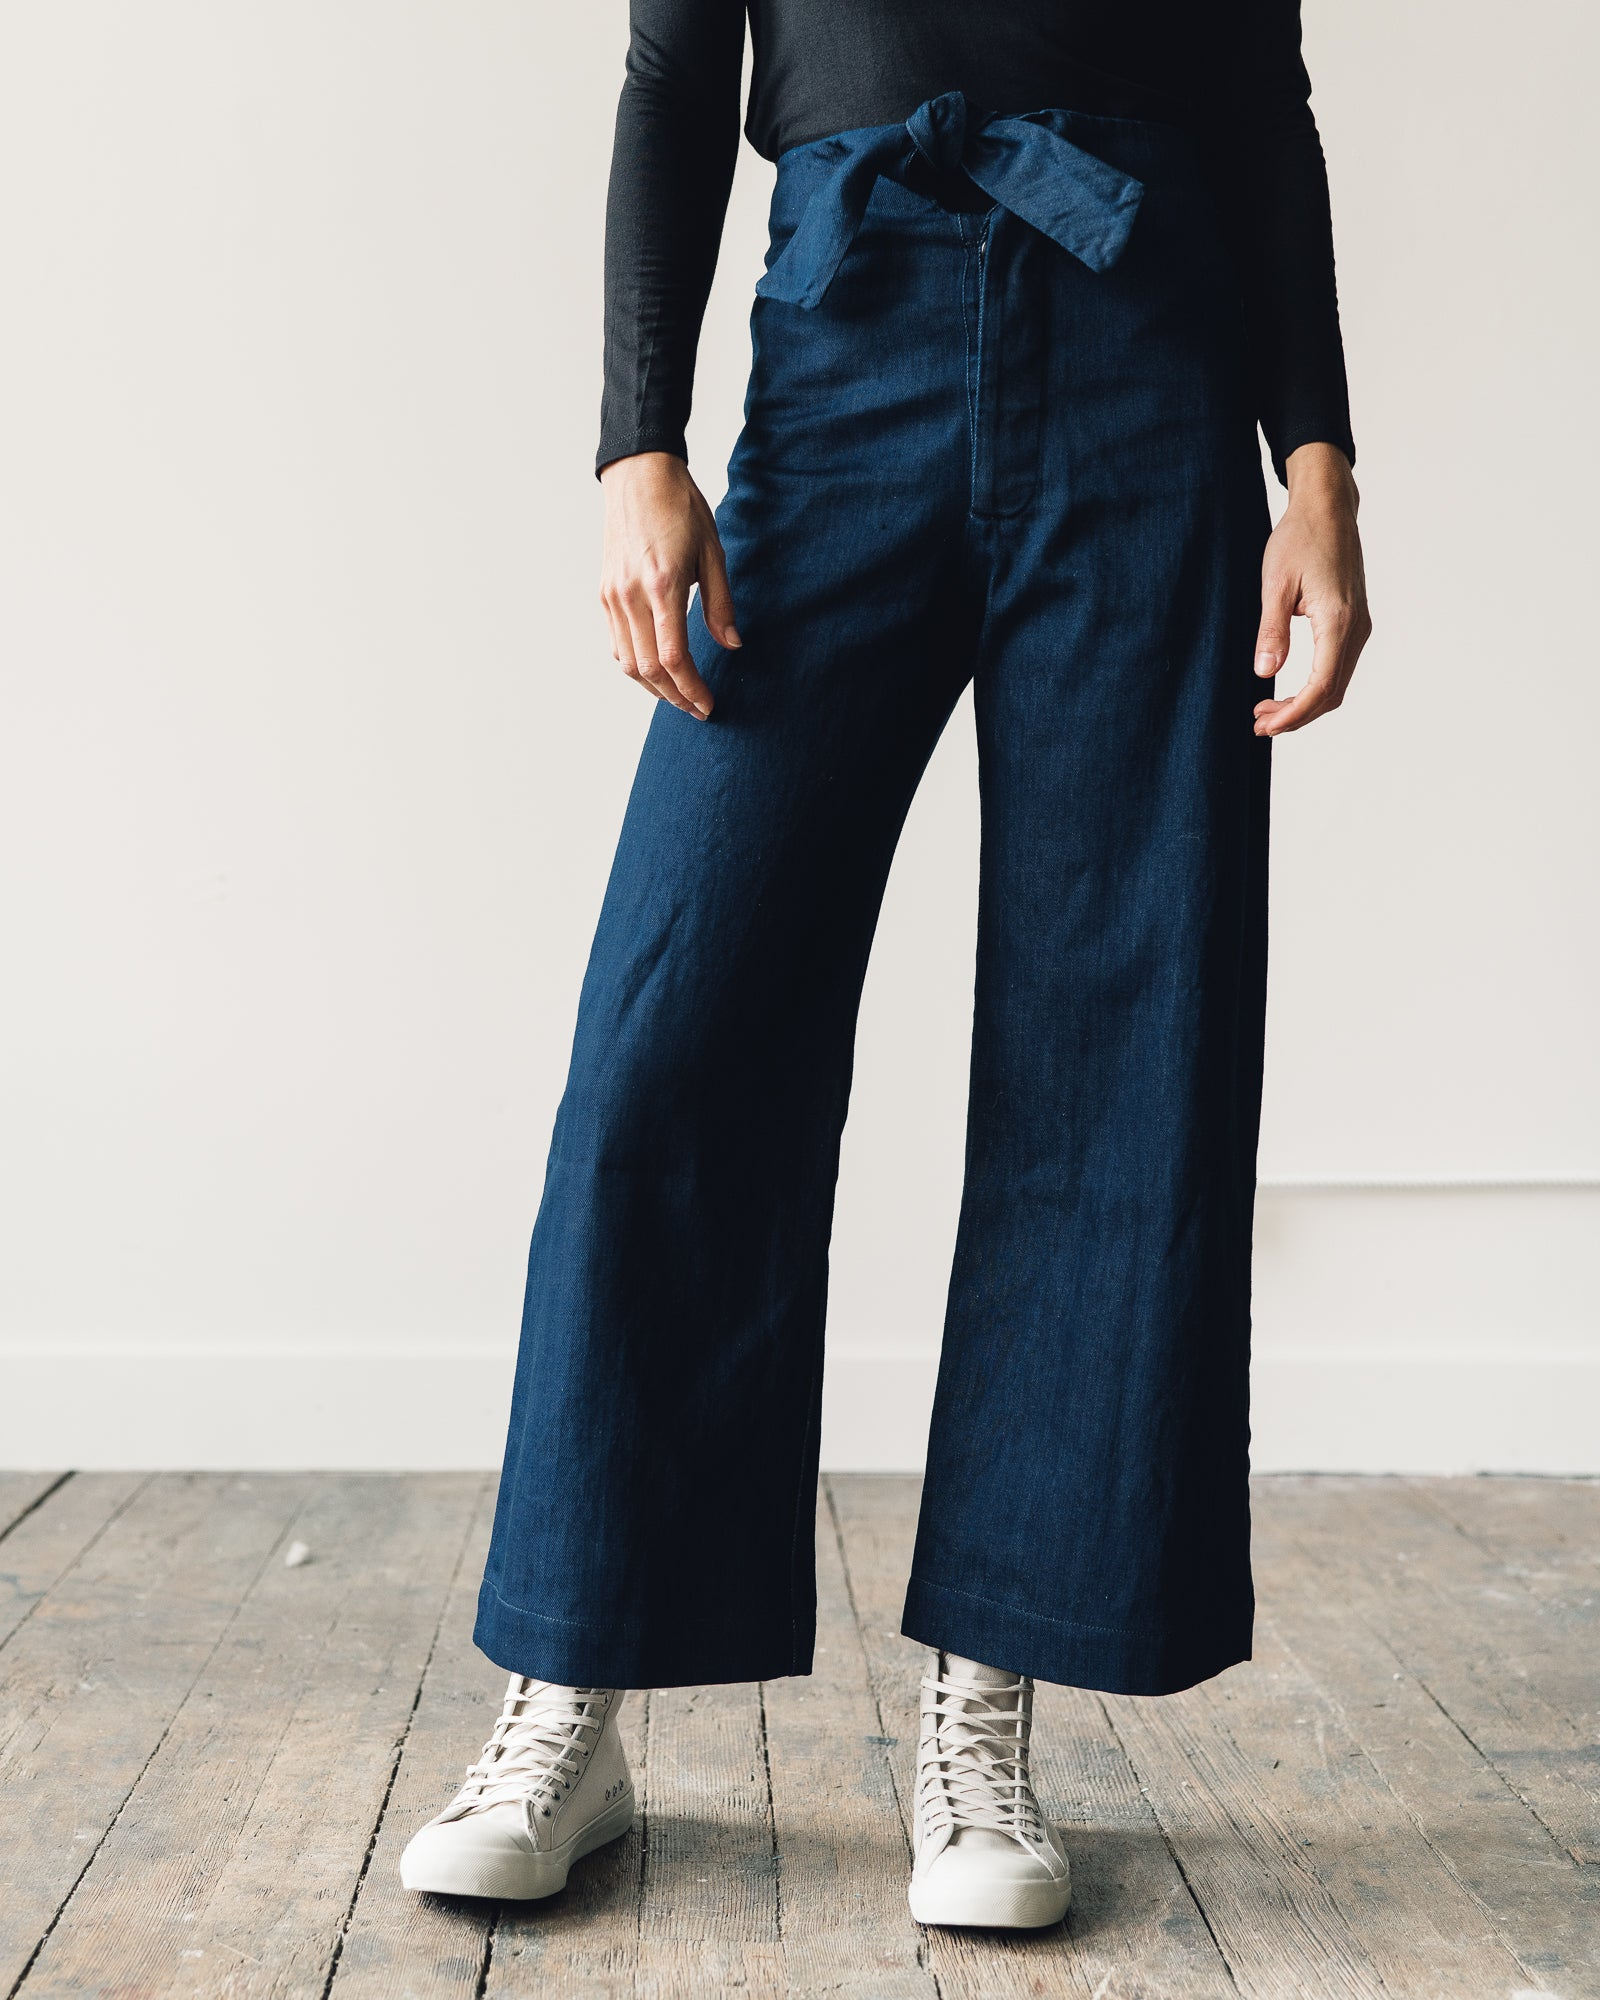 Micaela Greg Knotted Sailor Pant, Denim